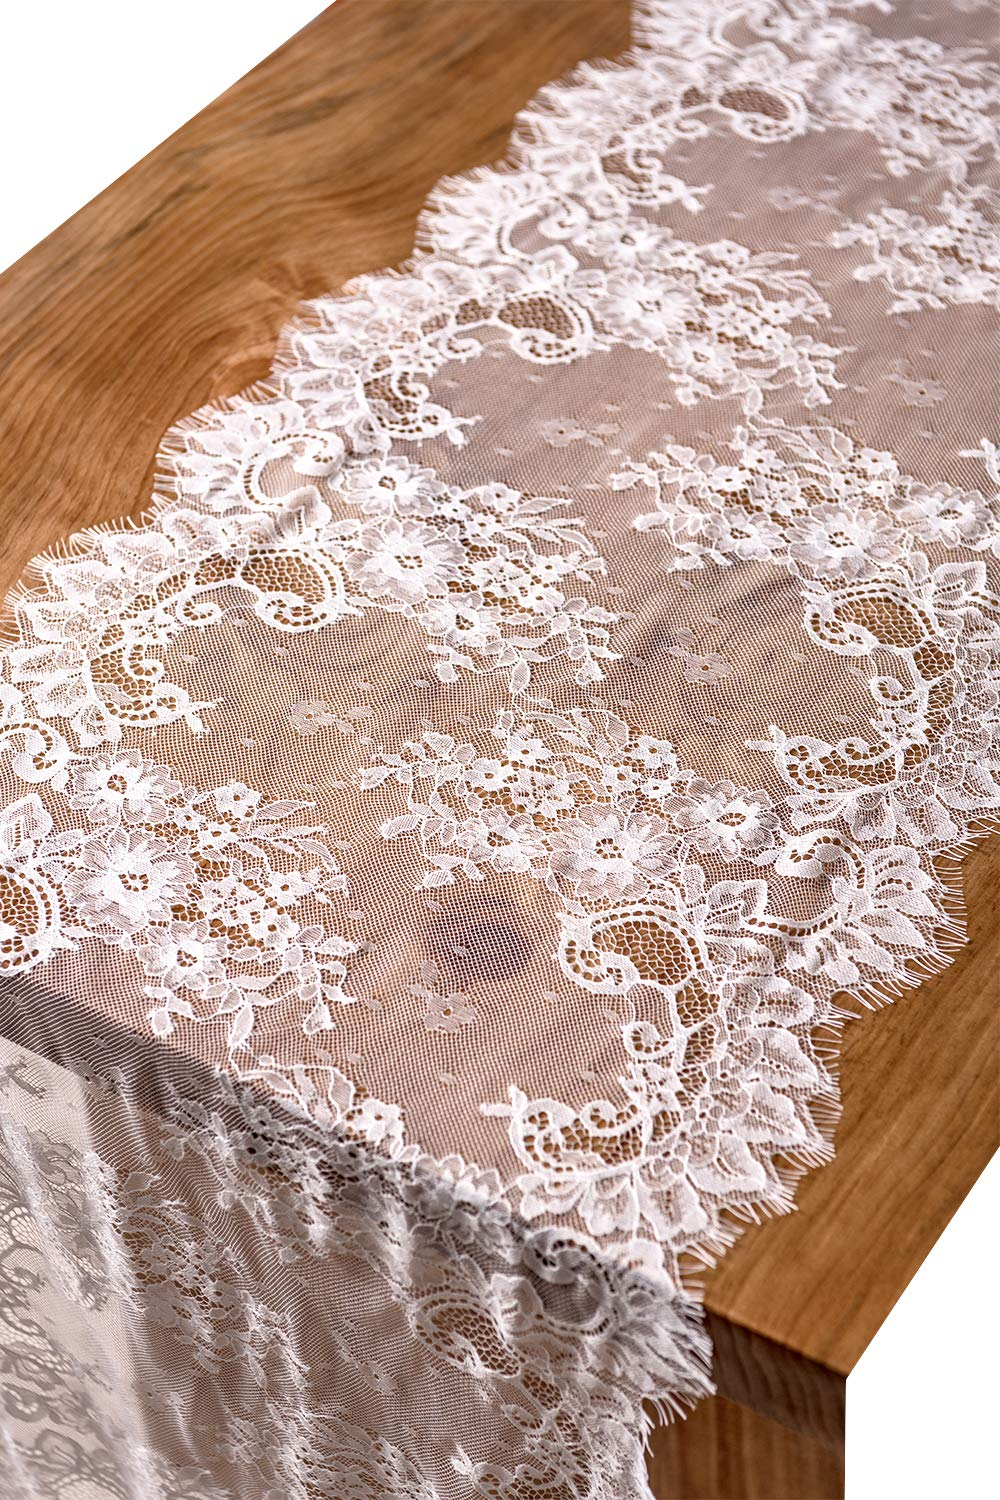 "Crisky 16"" x 120"" Lace Table Runners Lace Overlay with Rose Vintage Embroidered, Thin, Rustic Romantic Wedding Decor, Bridal Baby Girl Shower Decoration - ❤Beautiful rose vintage embroidered lace, adds extra elegance to your wedding ❤Size: Width 16 inch x length 120 inches (10 feet) ❤ Vintage White LACE Table Runners, classic and pretty, best choice for elegant wedding, romantic candlelight dinner, bridal shower, baby shower, birthday party or everyday use! - table-runners, kitchen-dining-room-table-linens, kitchen-dining-room - 81YTAlcz5%2BL -"